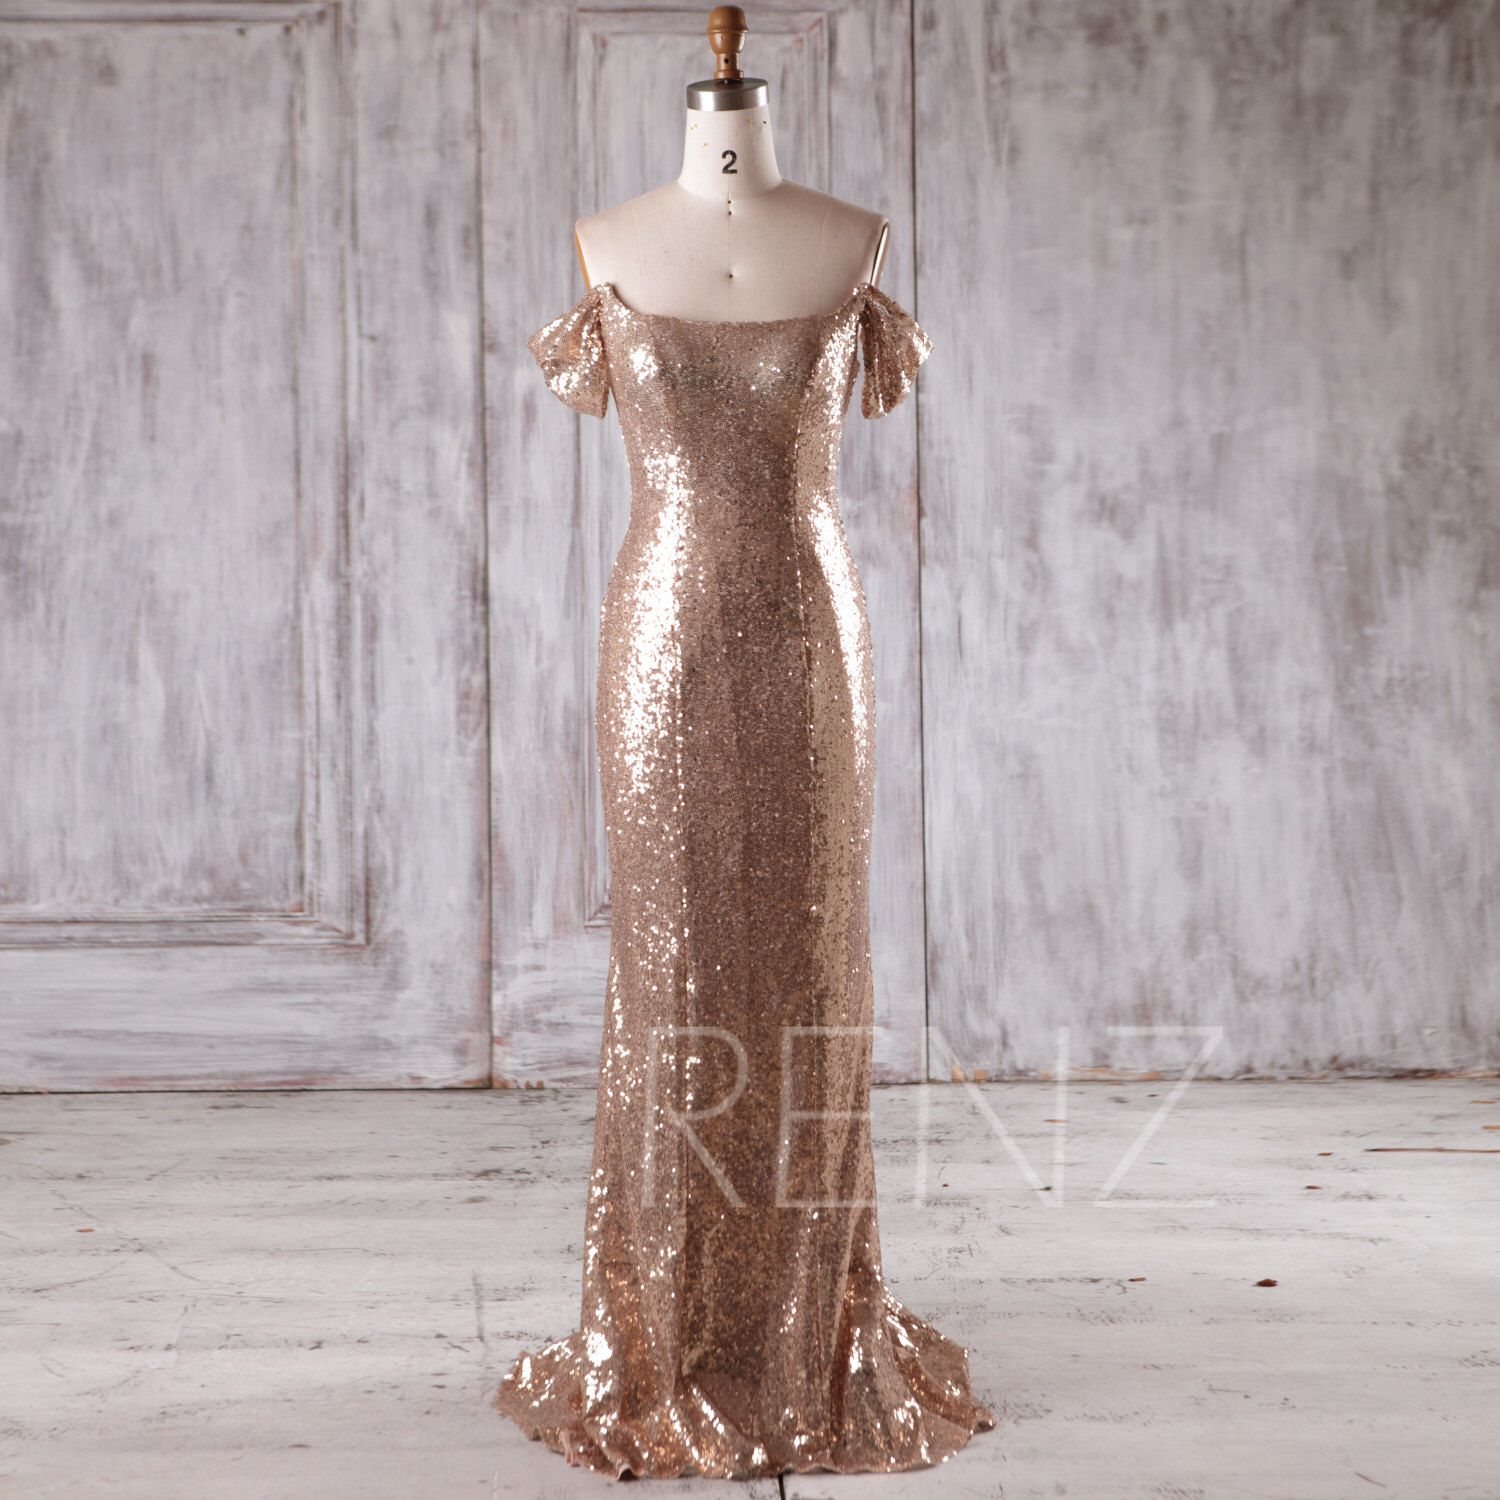 Gold scoop neck sequin cocktail dress